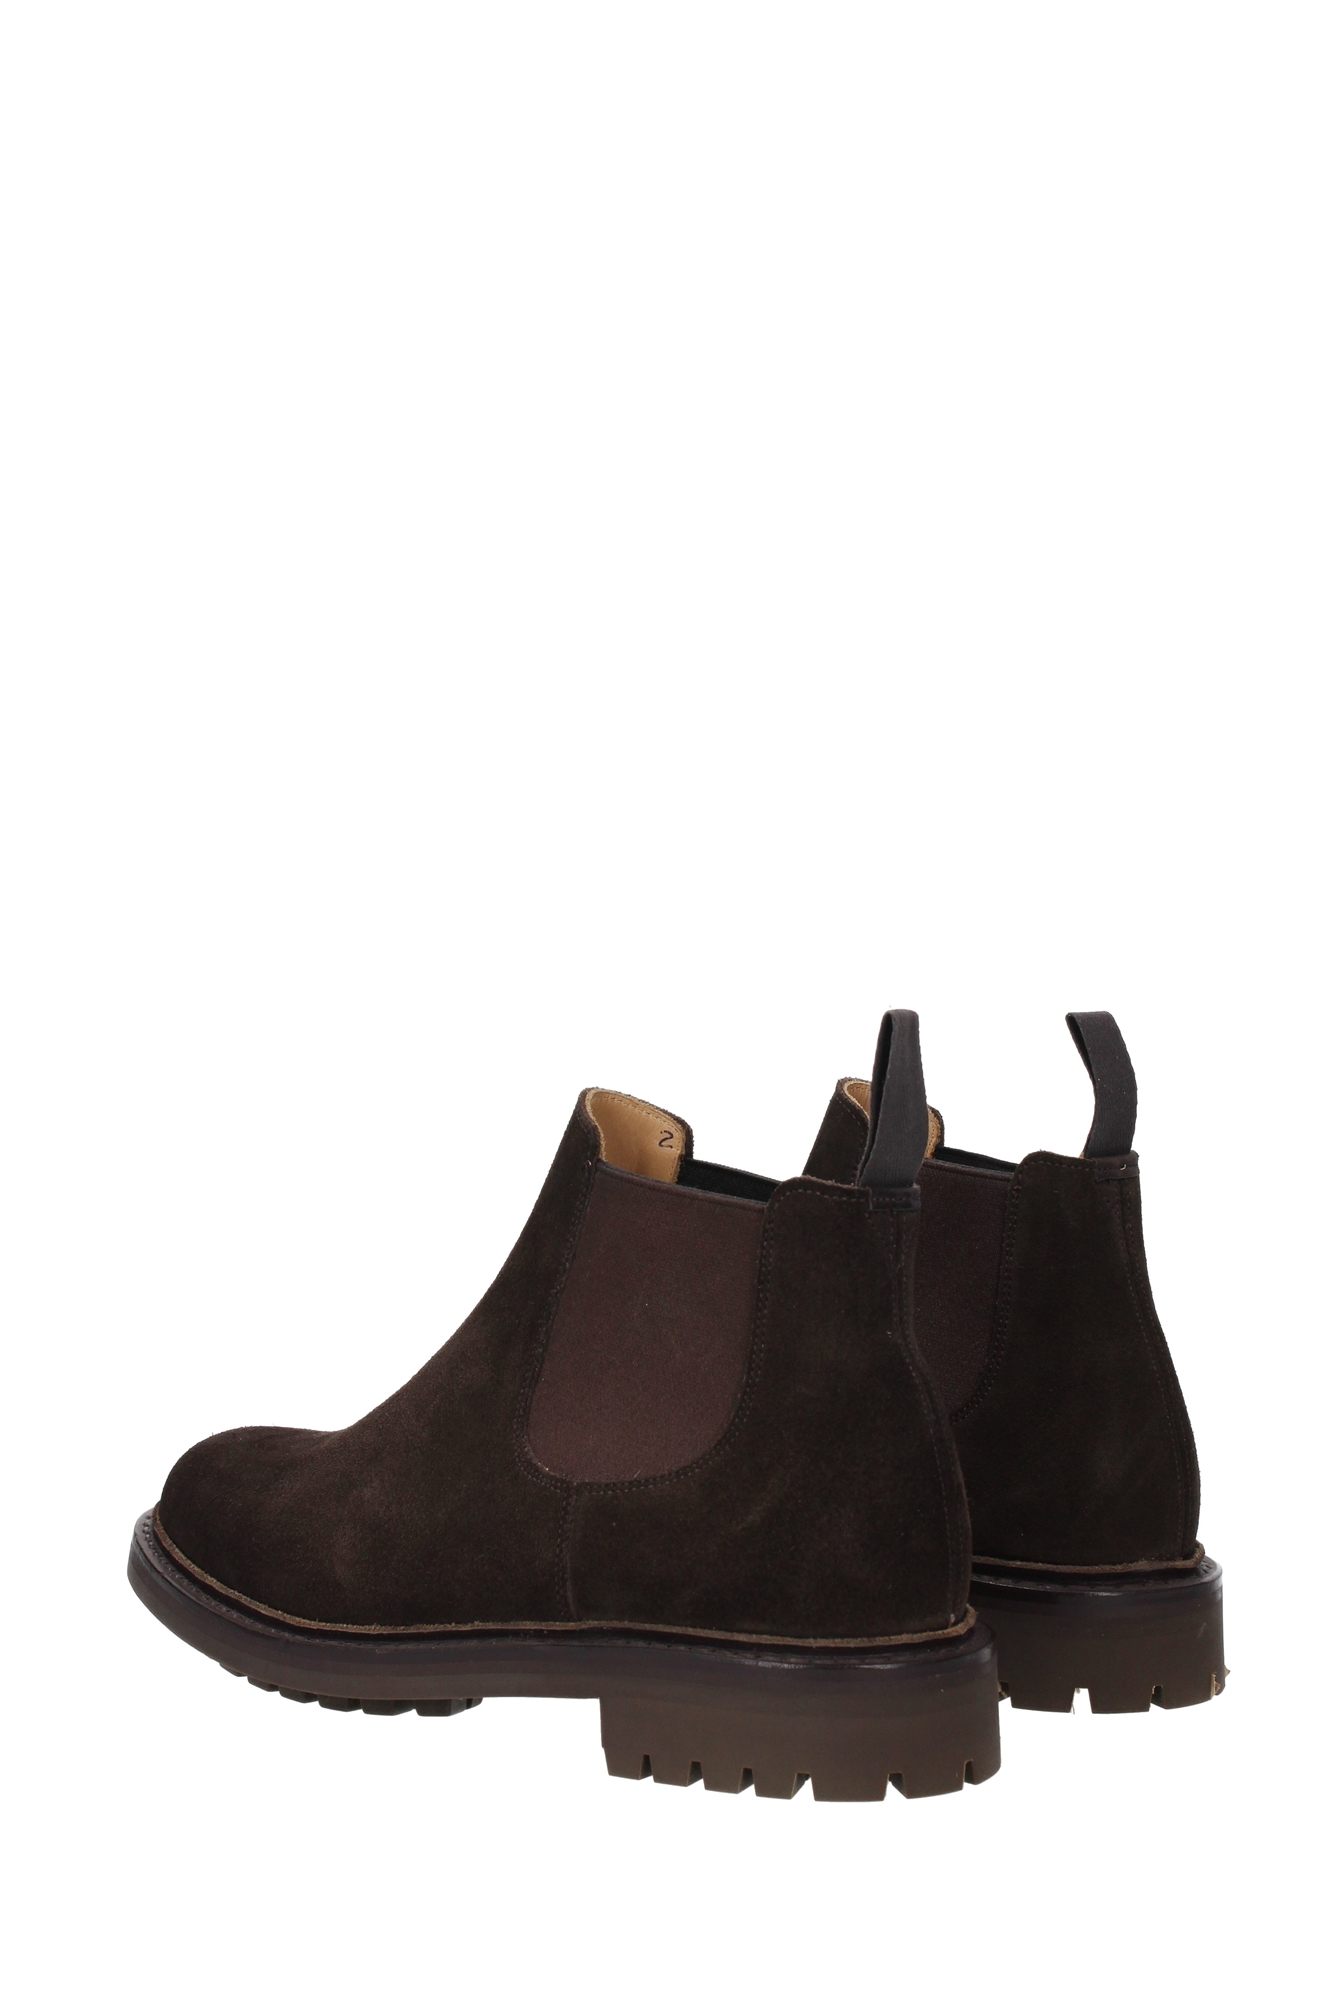 ankle boots church s suede brown mccarthycastoro ebay